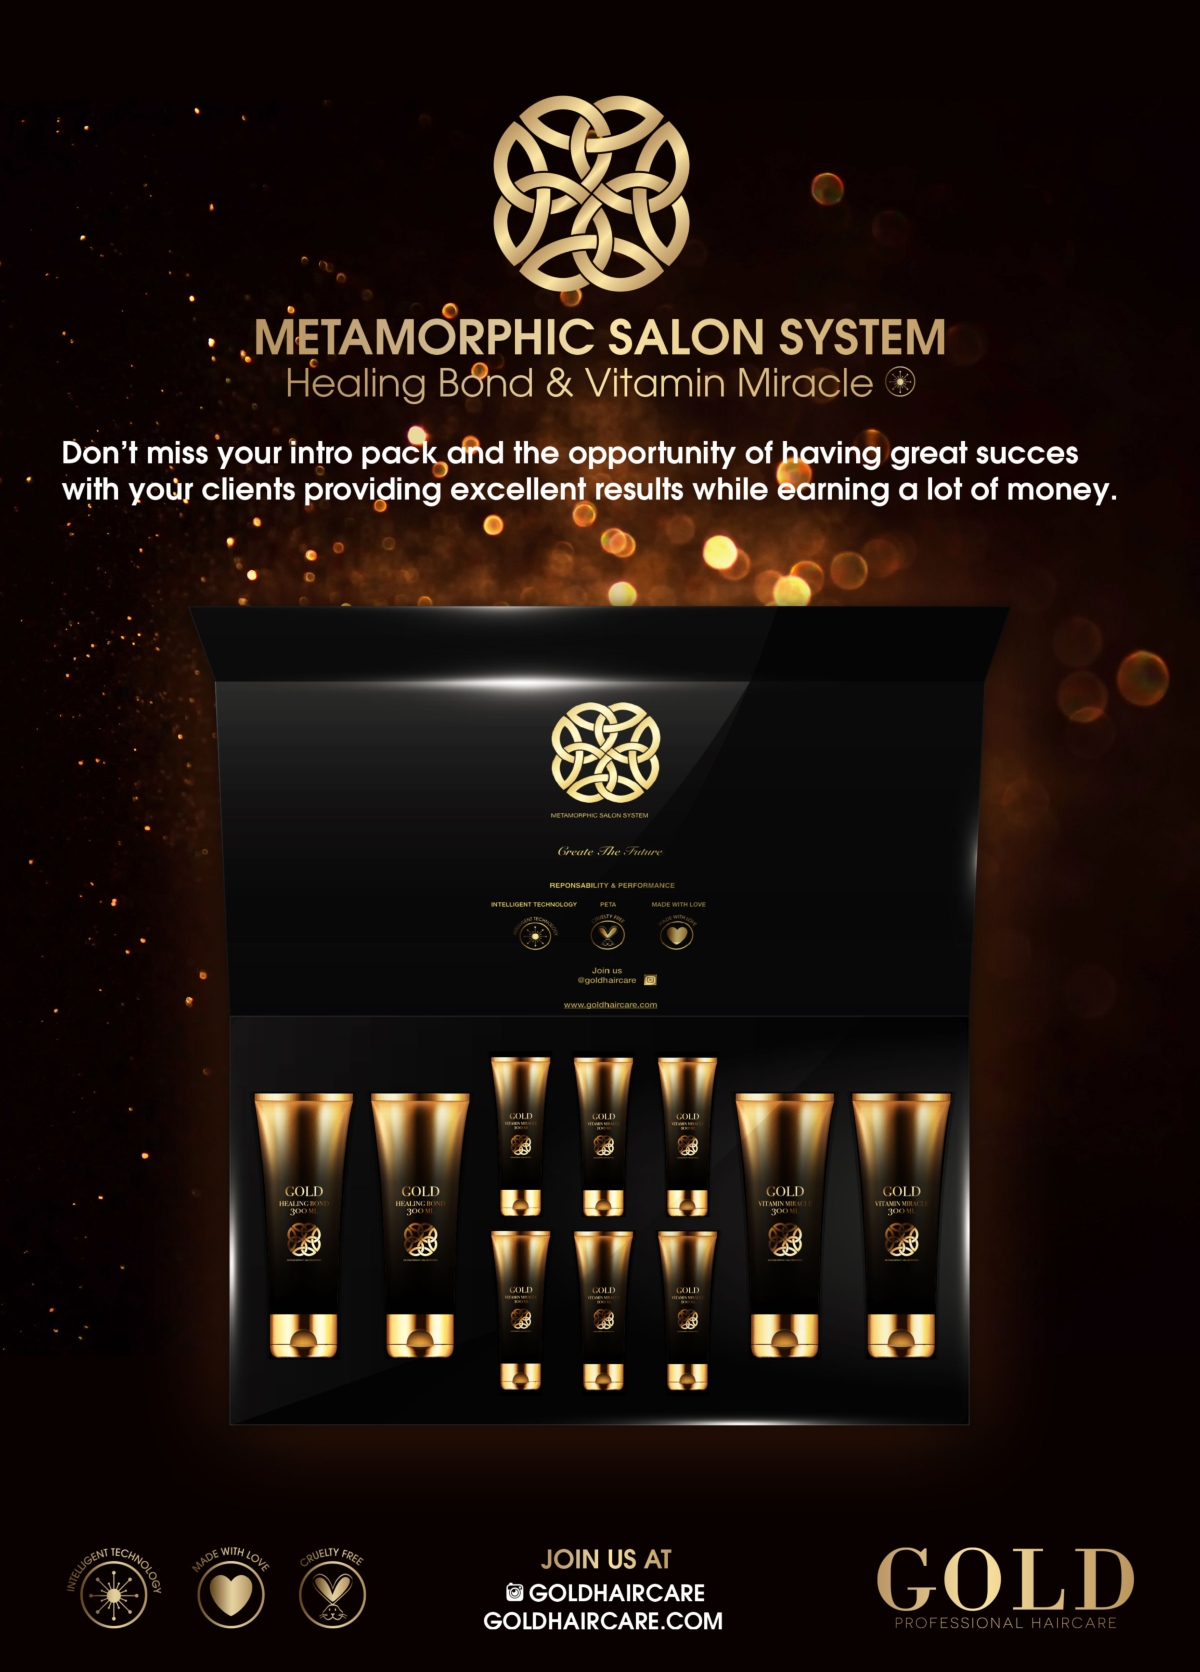 goldhaircare_metamorphicsalonsystem_1